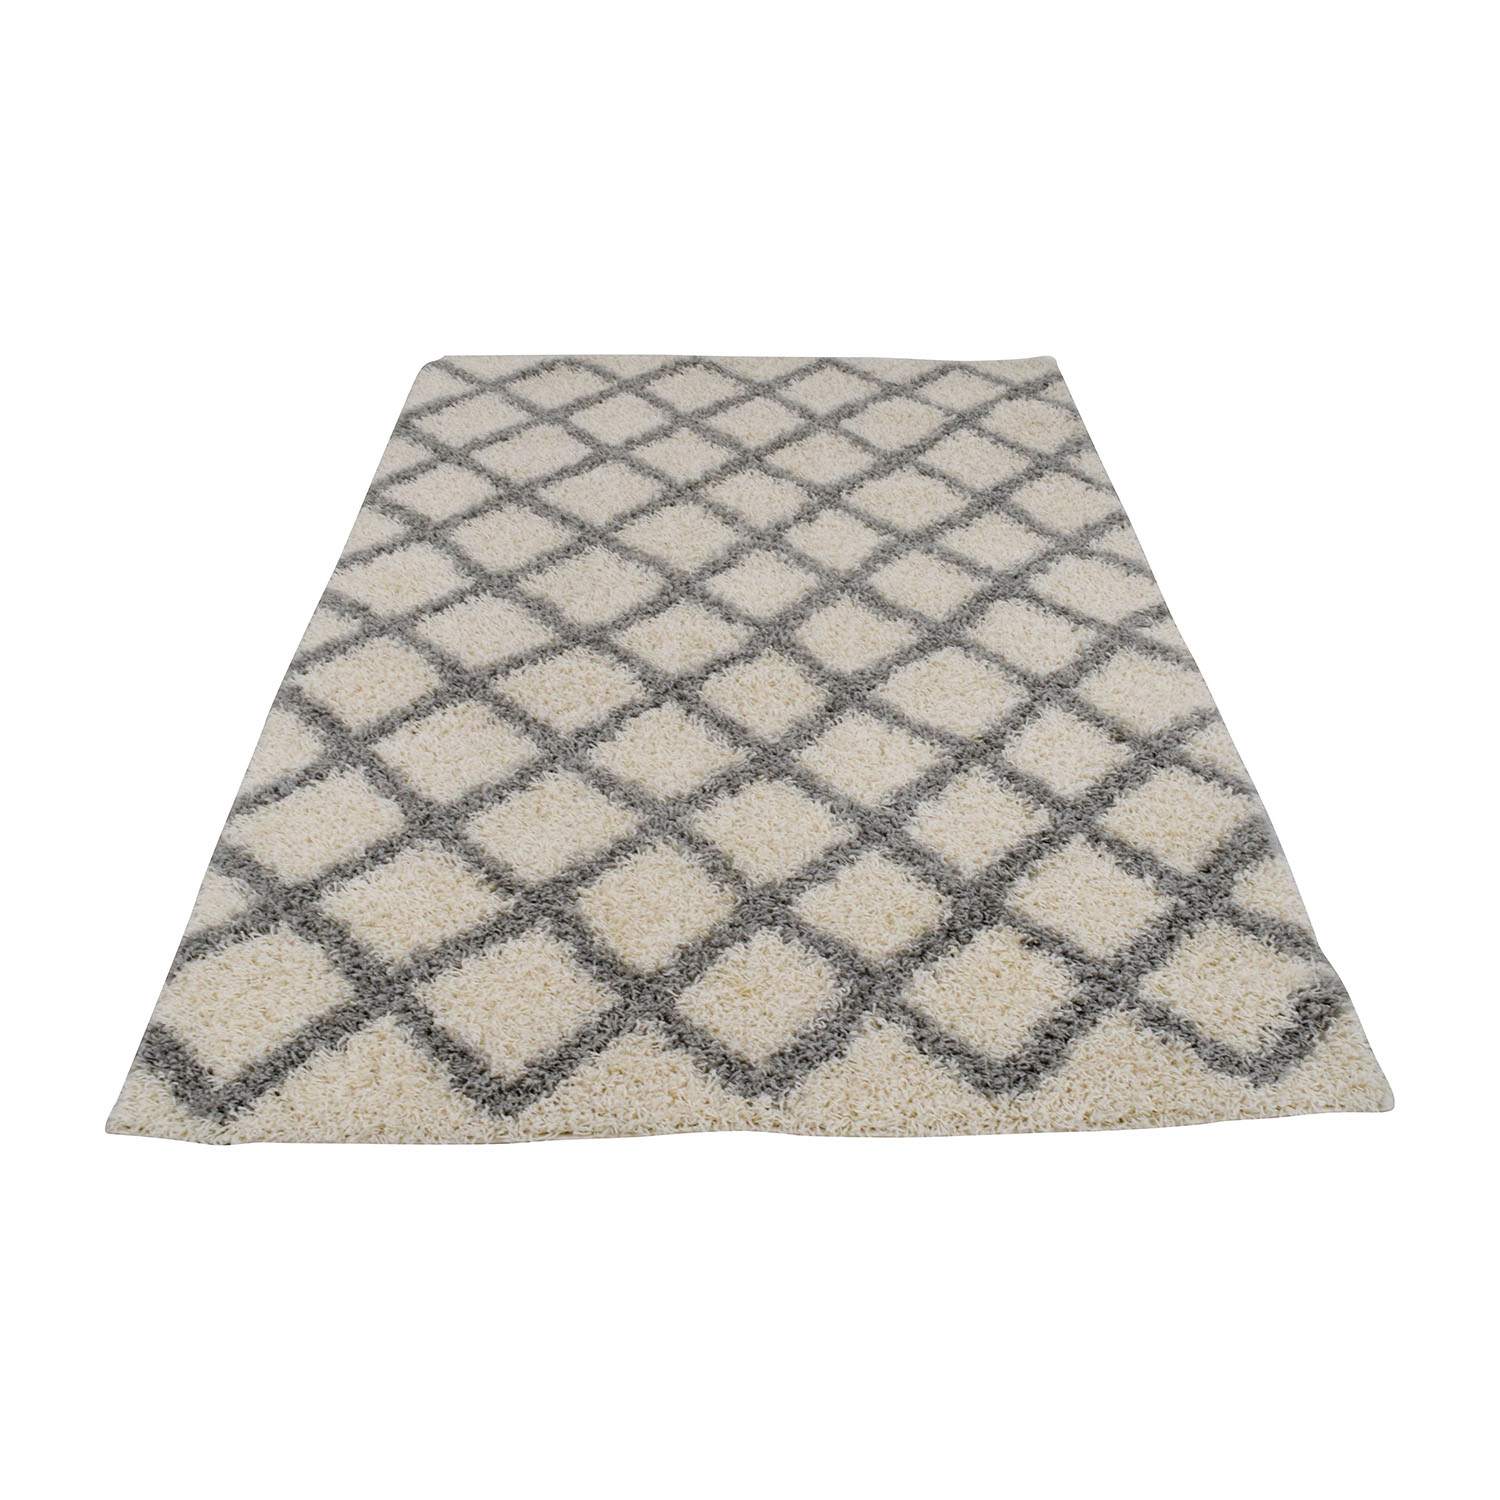 Safavieh Dallas Shag Ivory and Grey Trellis Rug sale